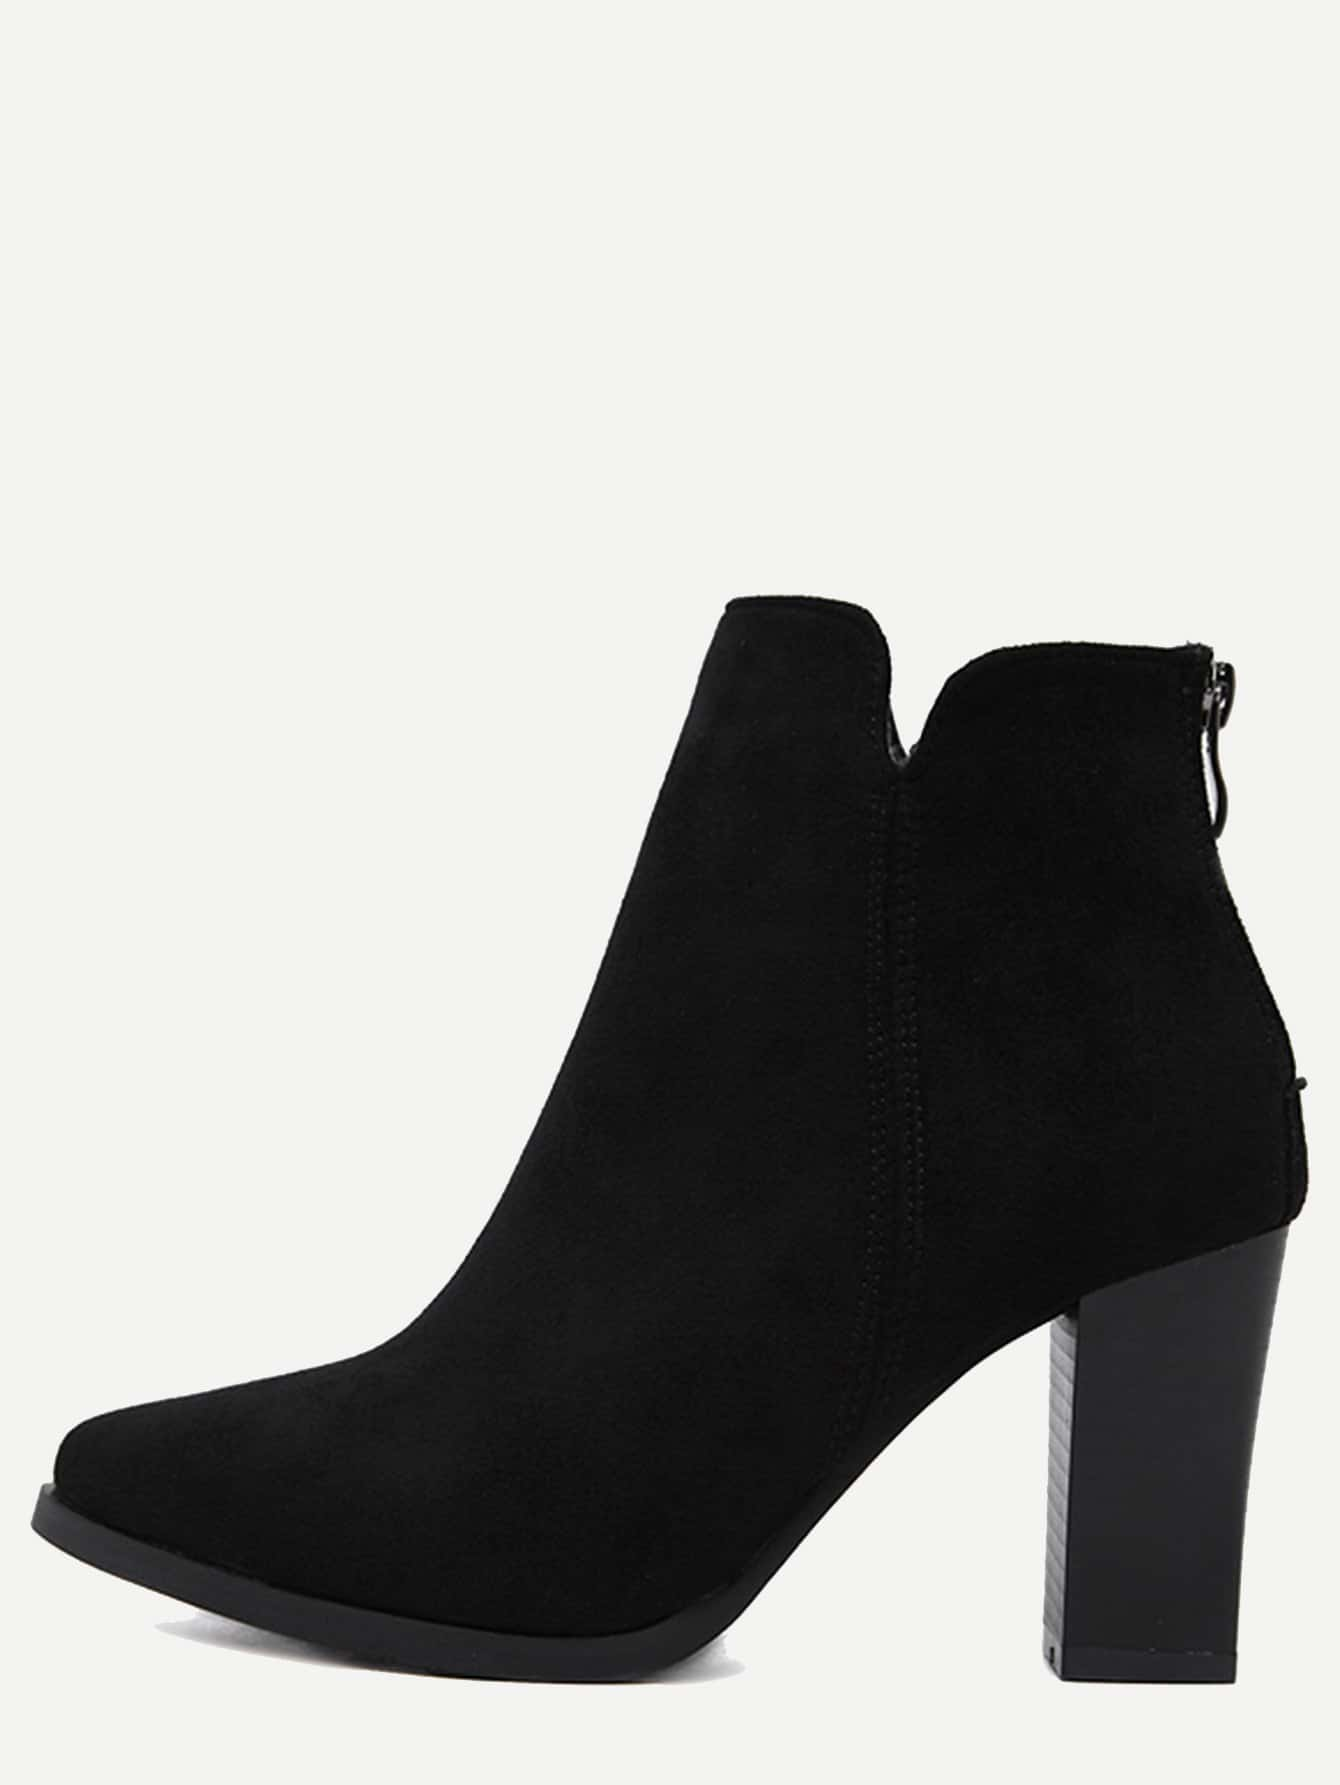 Black Suede Pointed Toe Back Zipper Ankle Boots shoes160817814